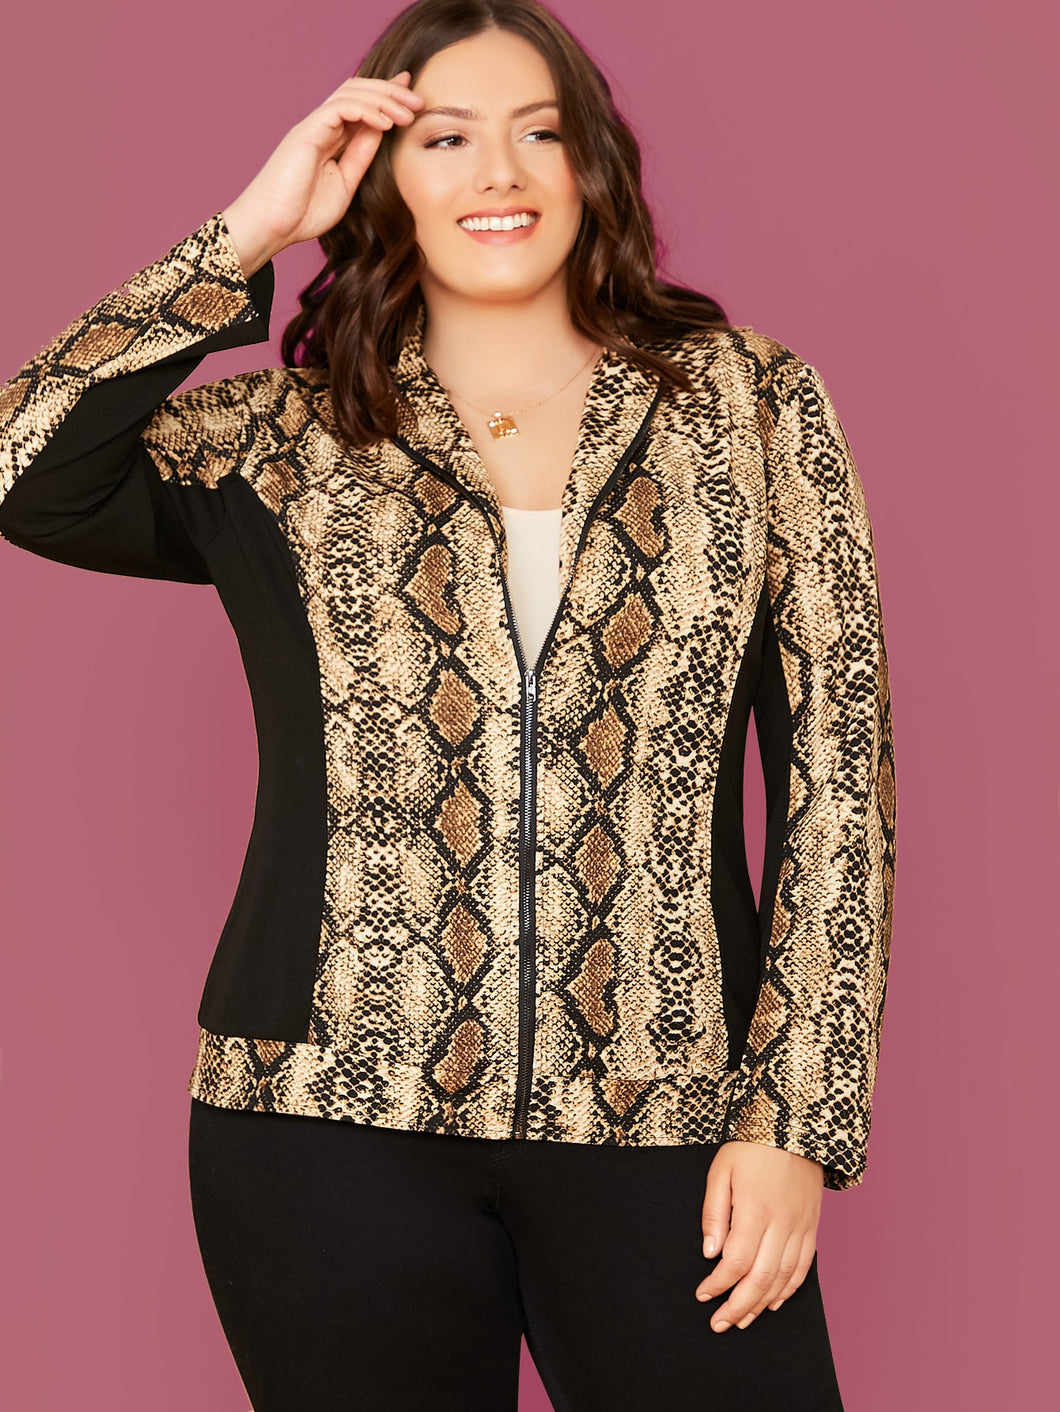 JACKET/COAT Plus Zip Up Solid Panel Snakeskin Print Jacket - EK CHIC